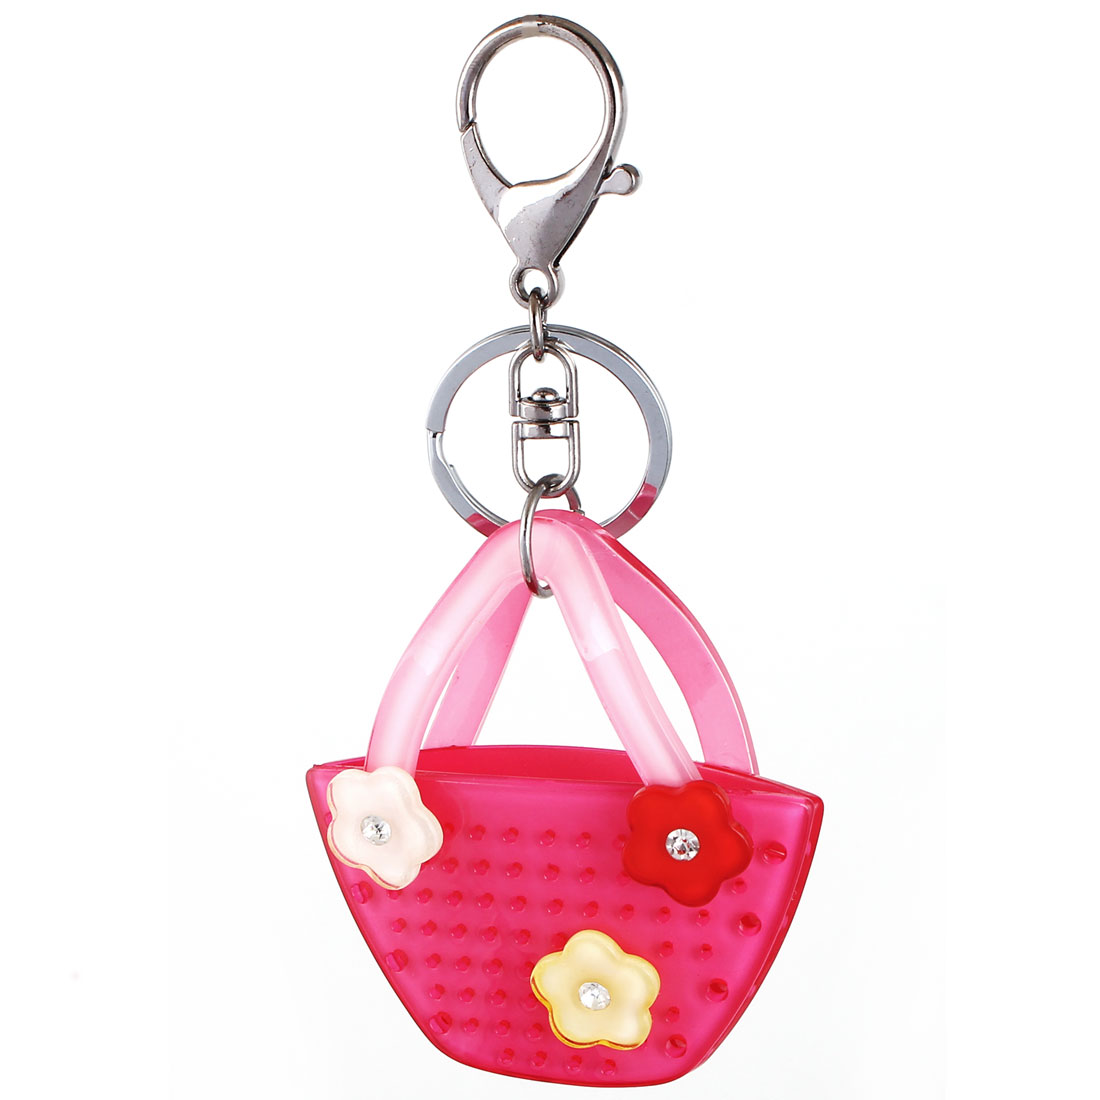 Bag Charm Gift Flowers Handbag Pendant Lobster Clasp Keyring Key Chain Fuchsia